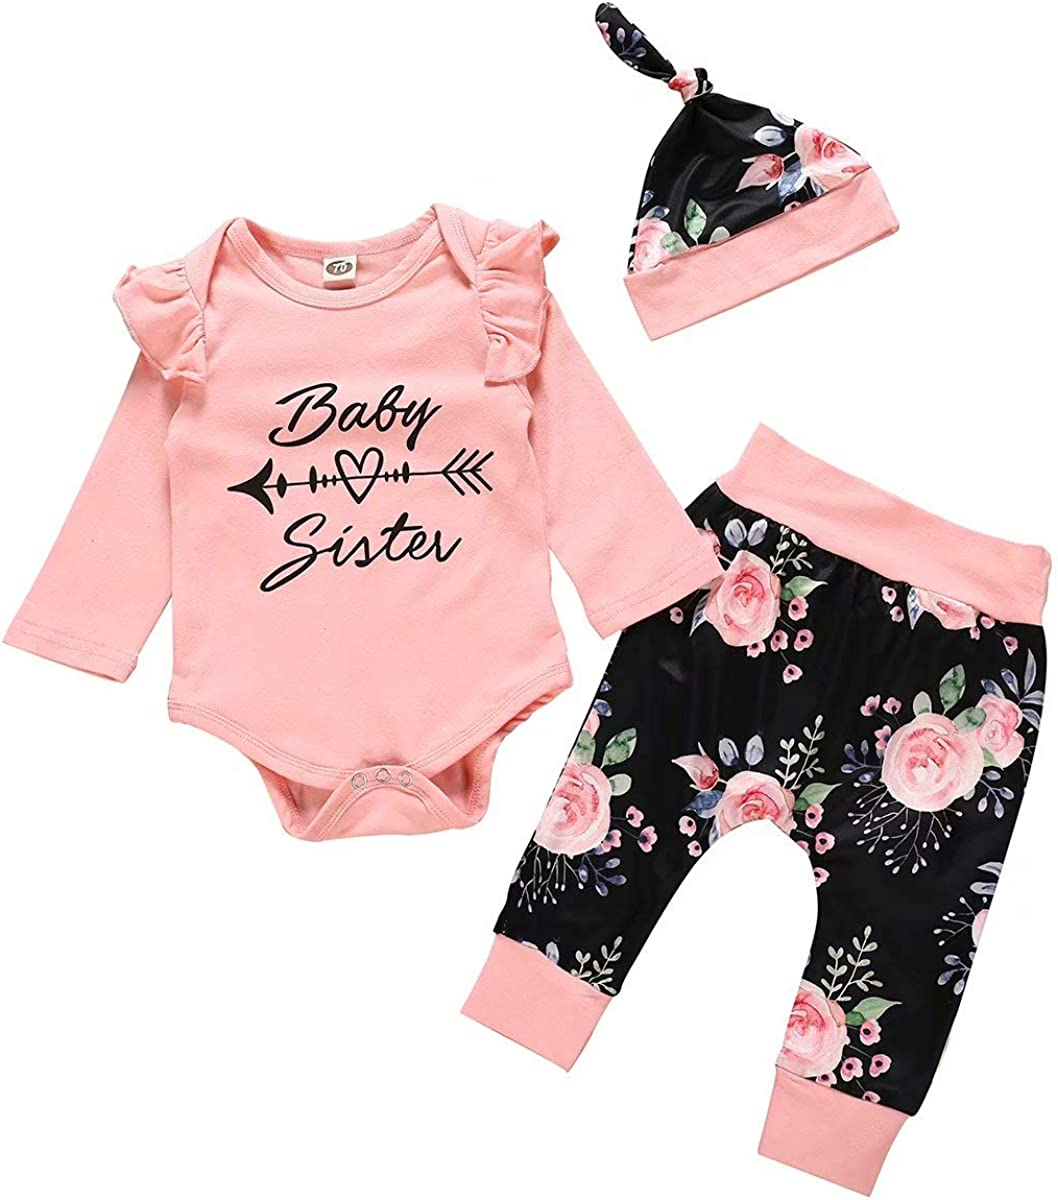 Baby Girl Clothes Newborn Outfits Infant 3Pcs Tops + Pants + Headband or Hats